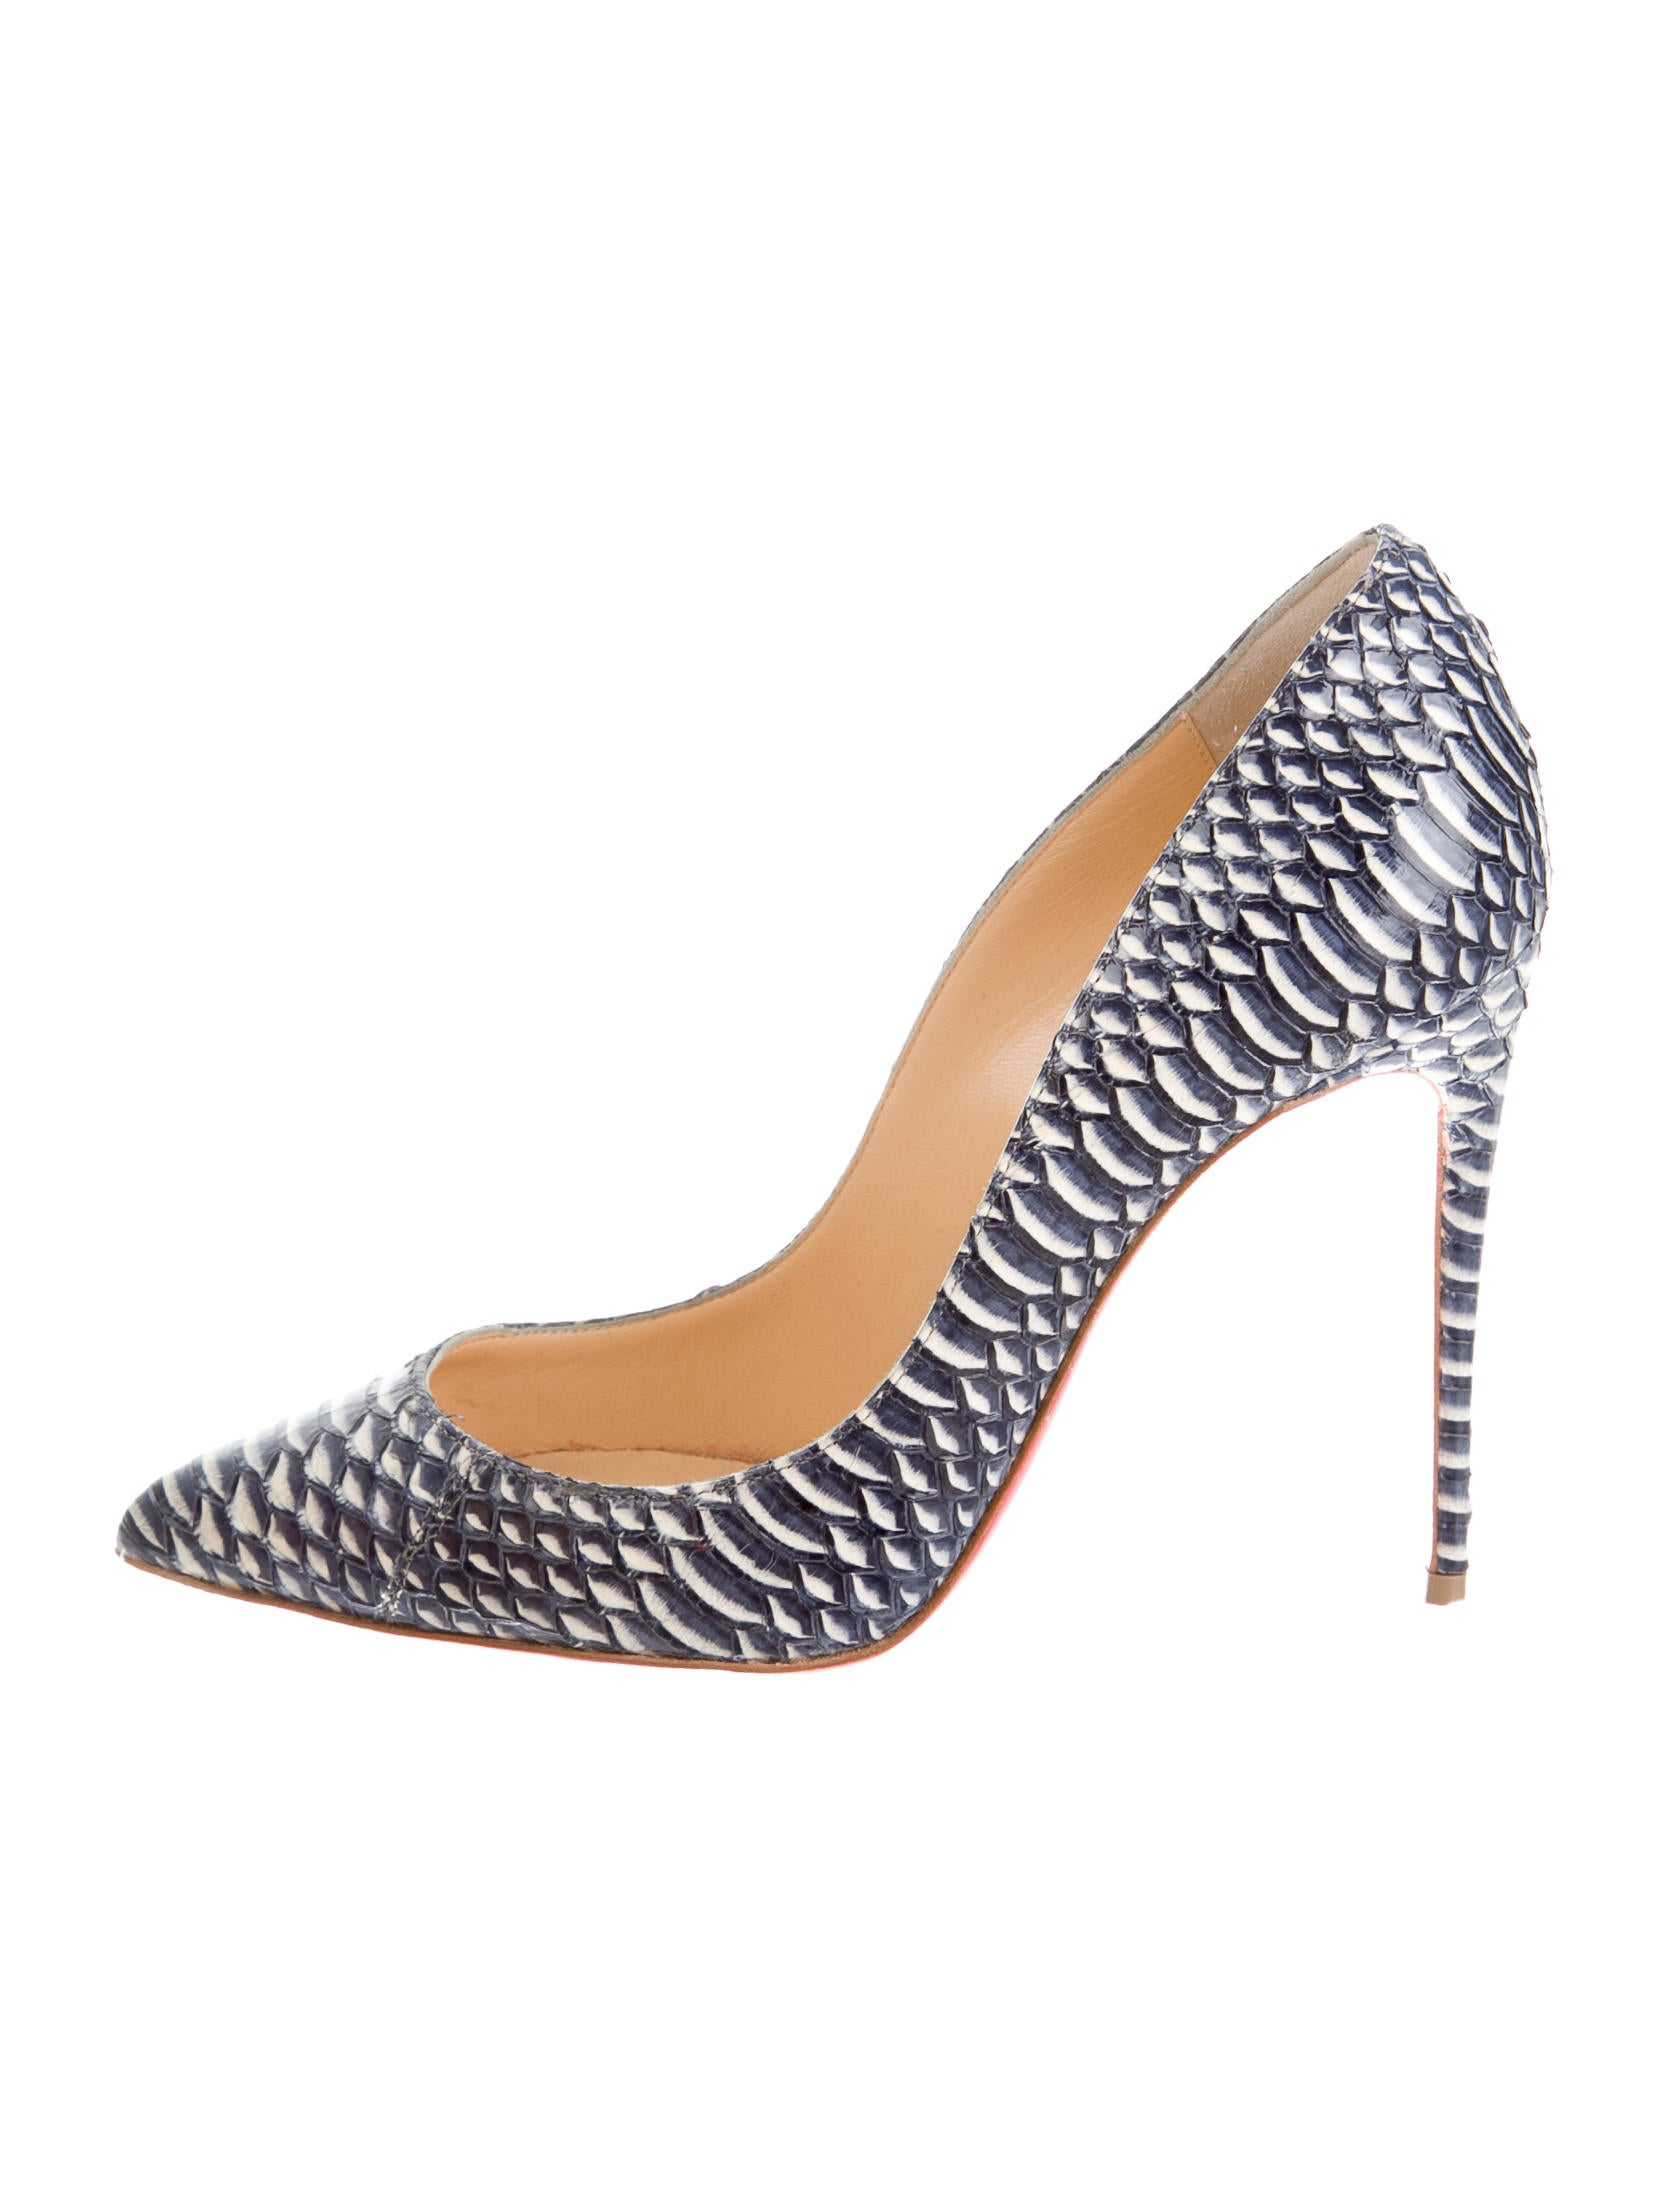 Christian Louboutin Watersnake Pigalle Pumps - Shoes - CHT43082 ...